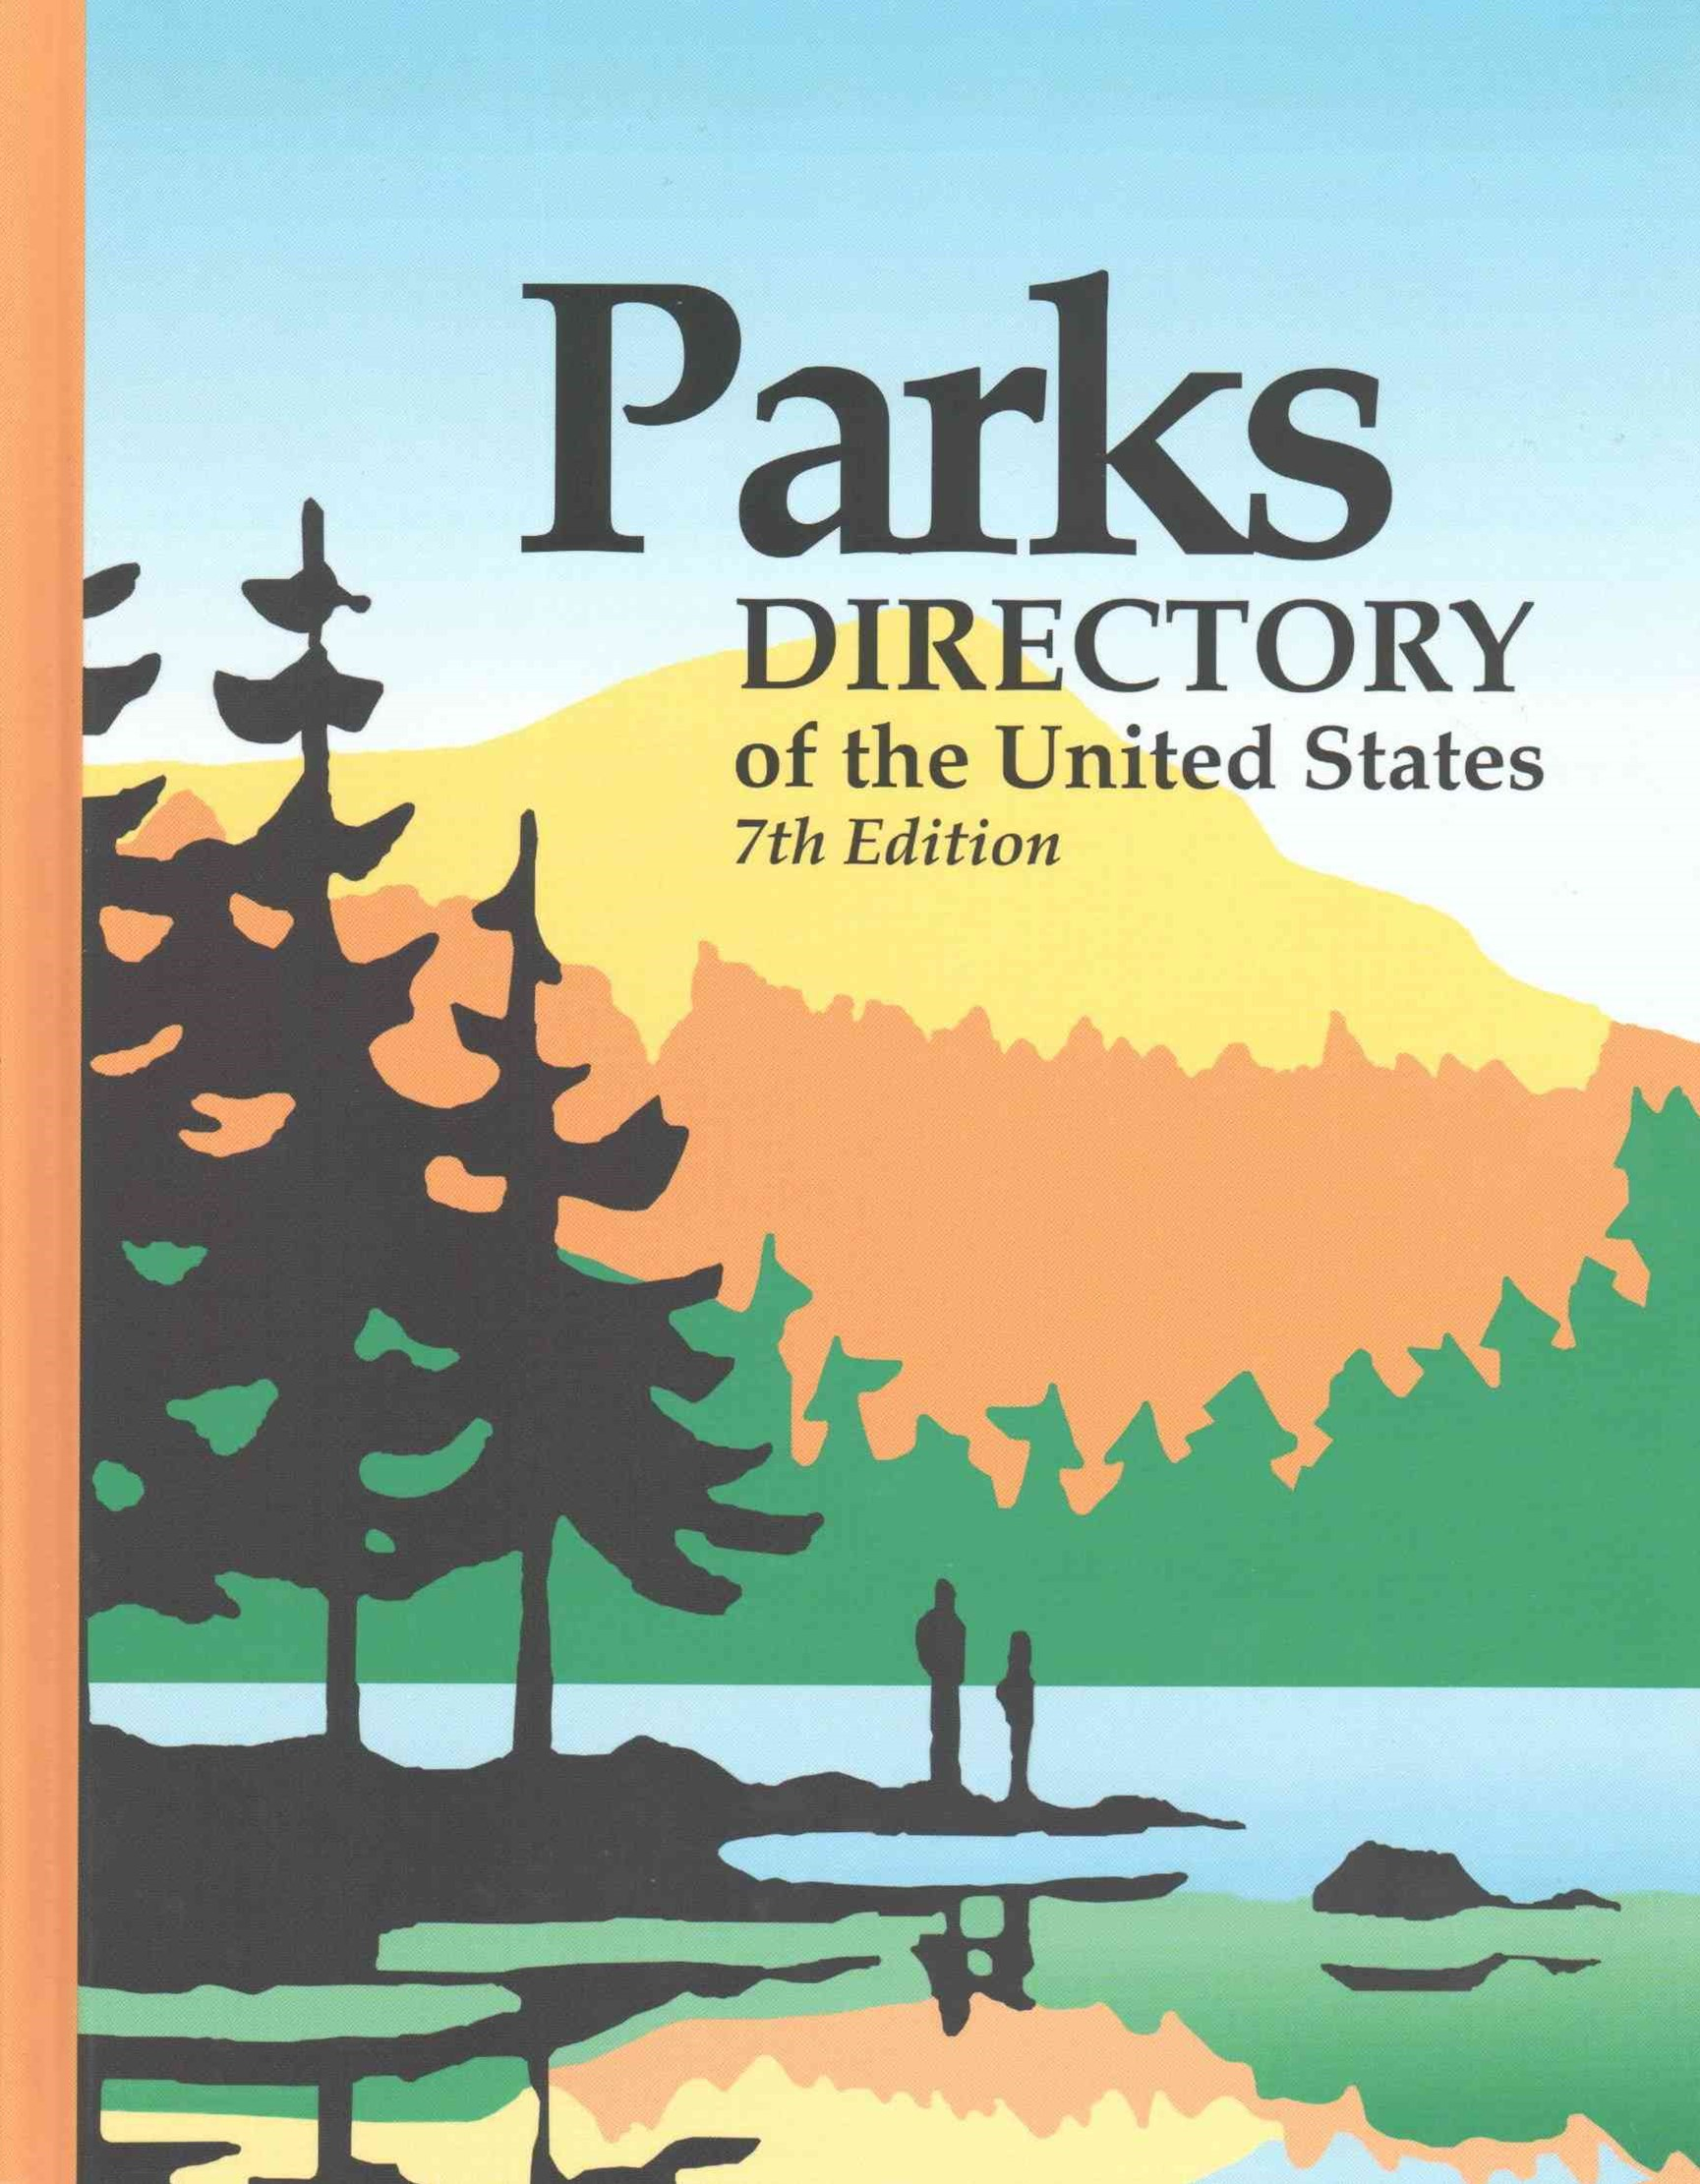 Parks Directory of the United States 7th Ed